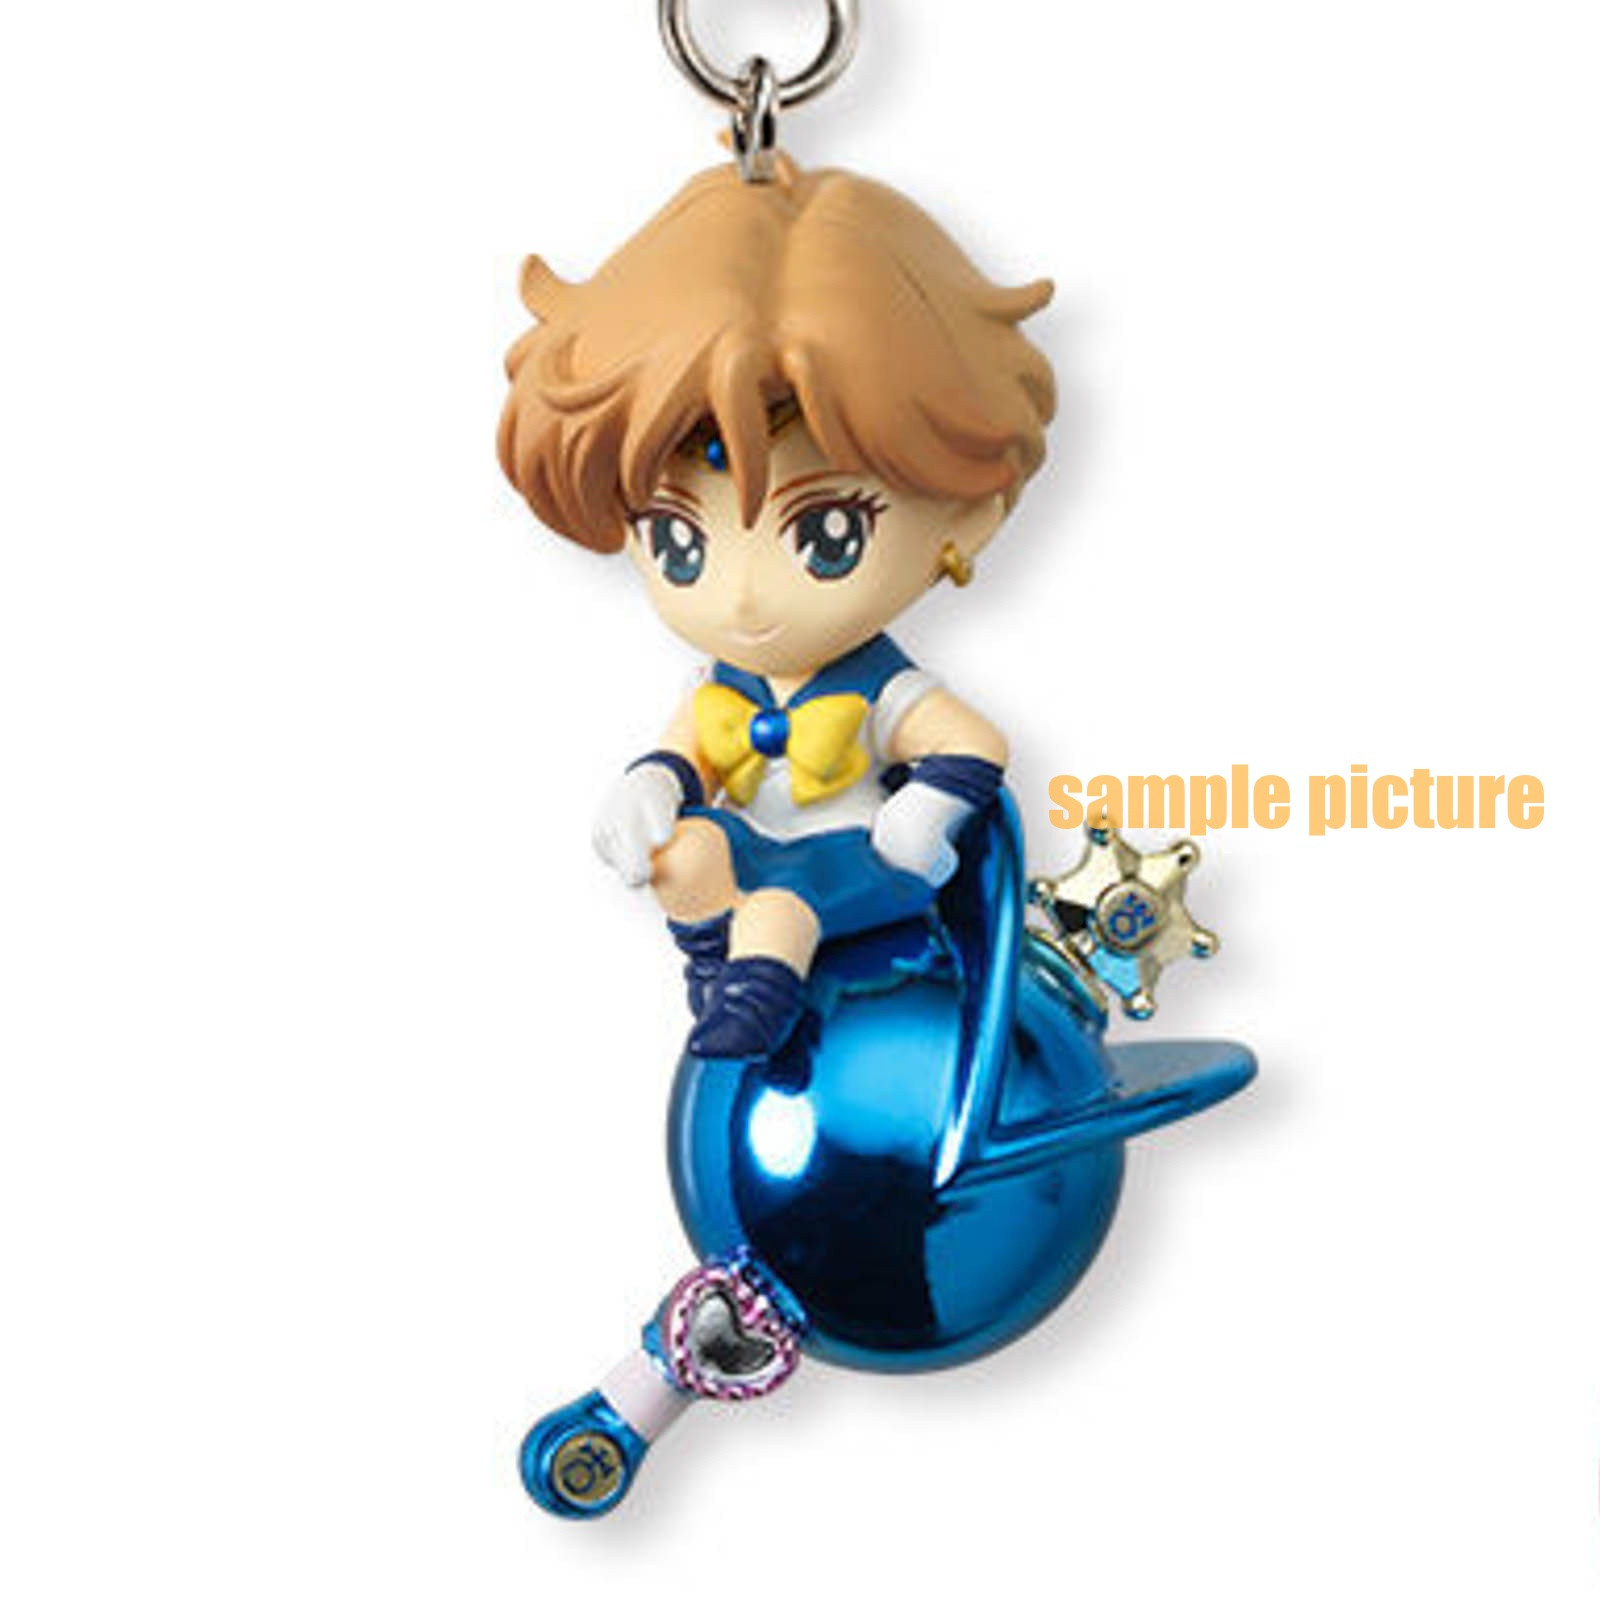 Sailor Moon Sailor Uranus Twinkle Dolly 2 Figure Strap JAPAN ANIME